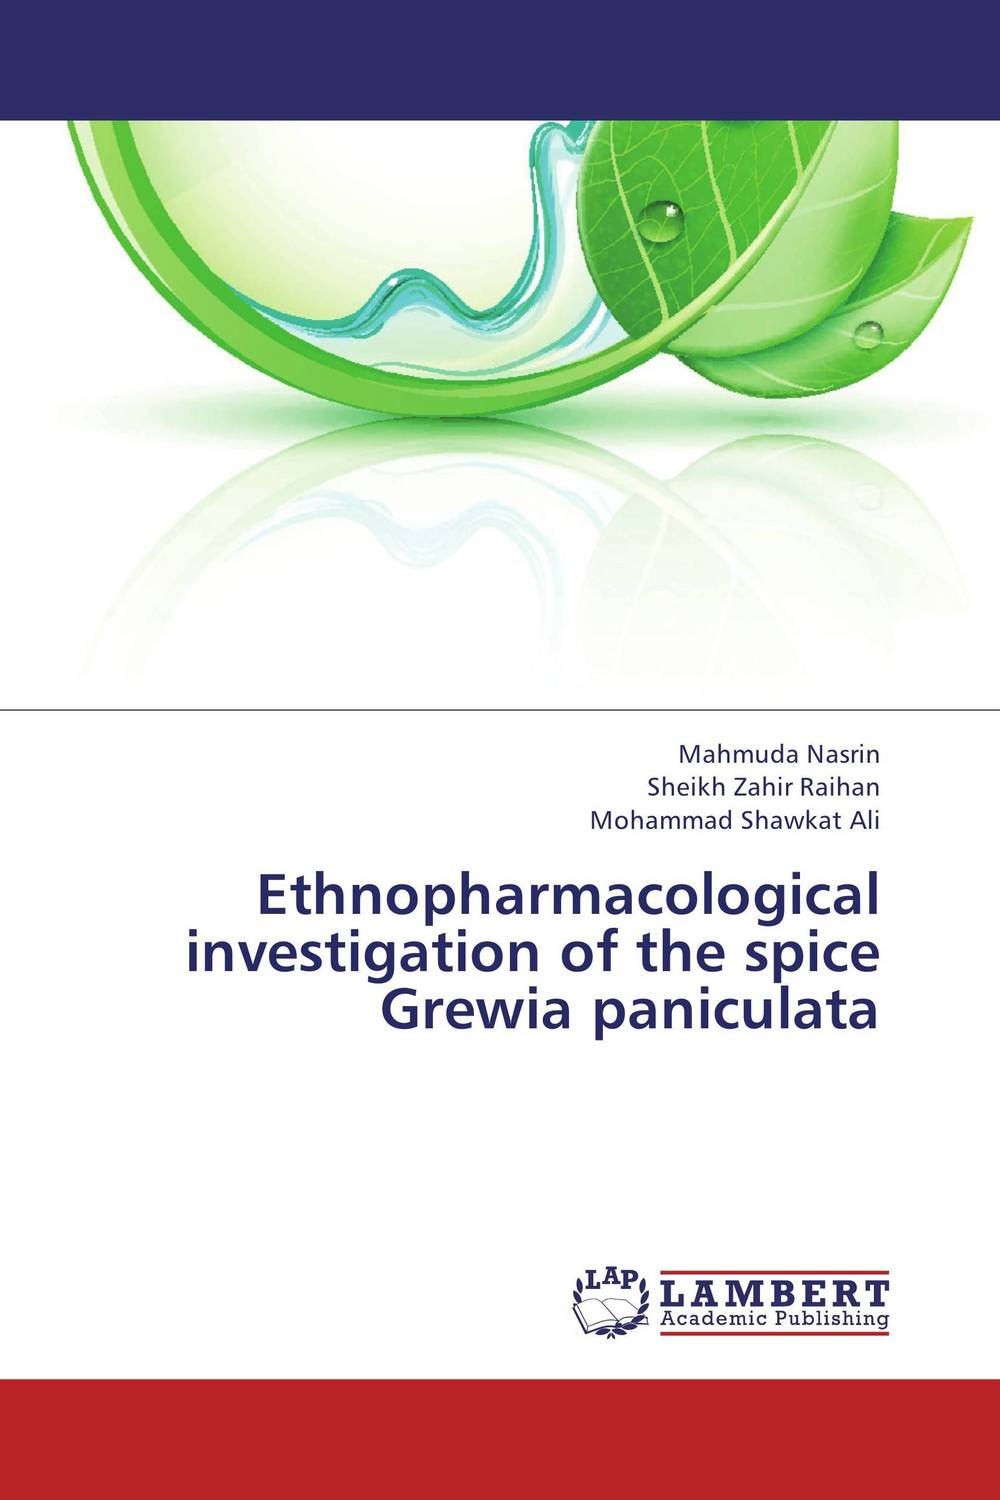 Ethnopharmacological investigation of the spice Grewia paniculata effect of medicinal plant extracts on the viability of protoscoleces